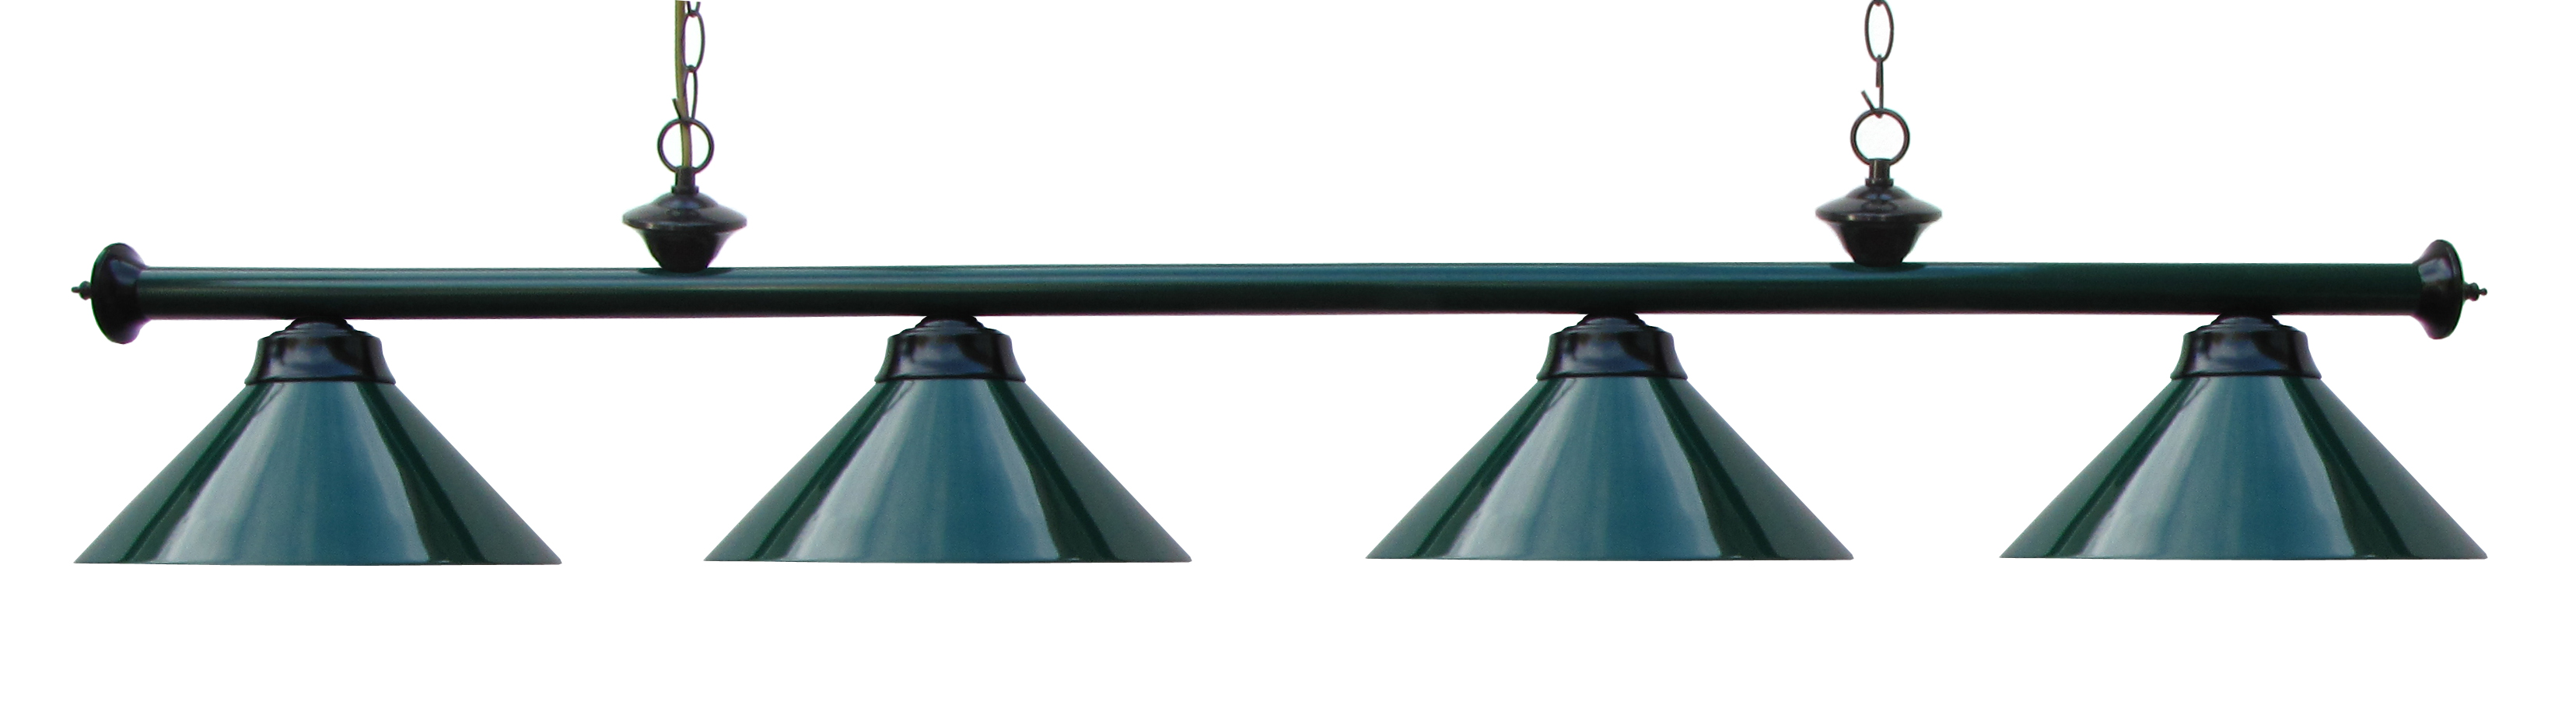 72 Inch Pool Table Light Pool Table Light Green   Black With Metal Shades by